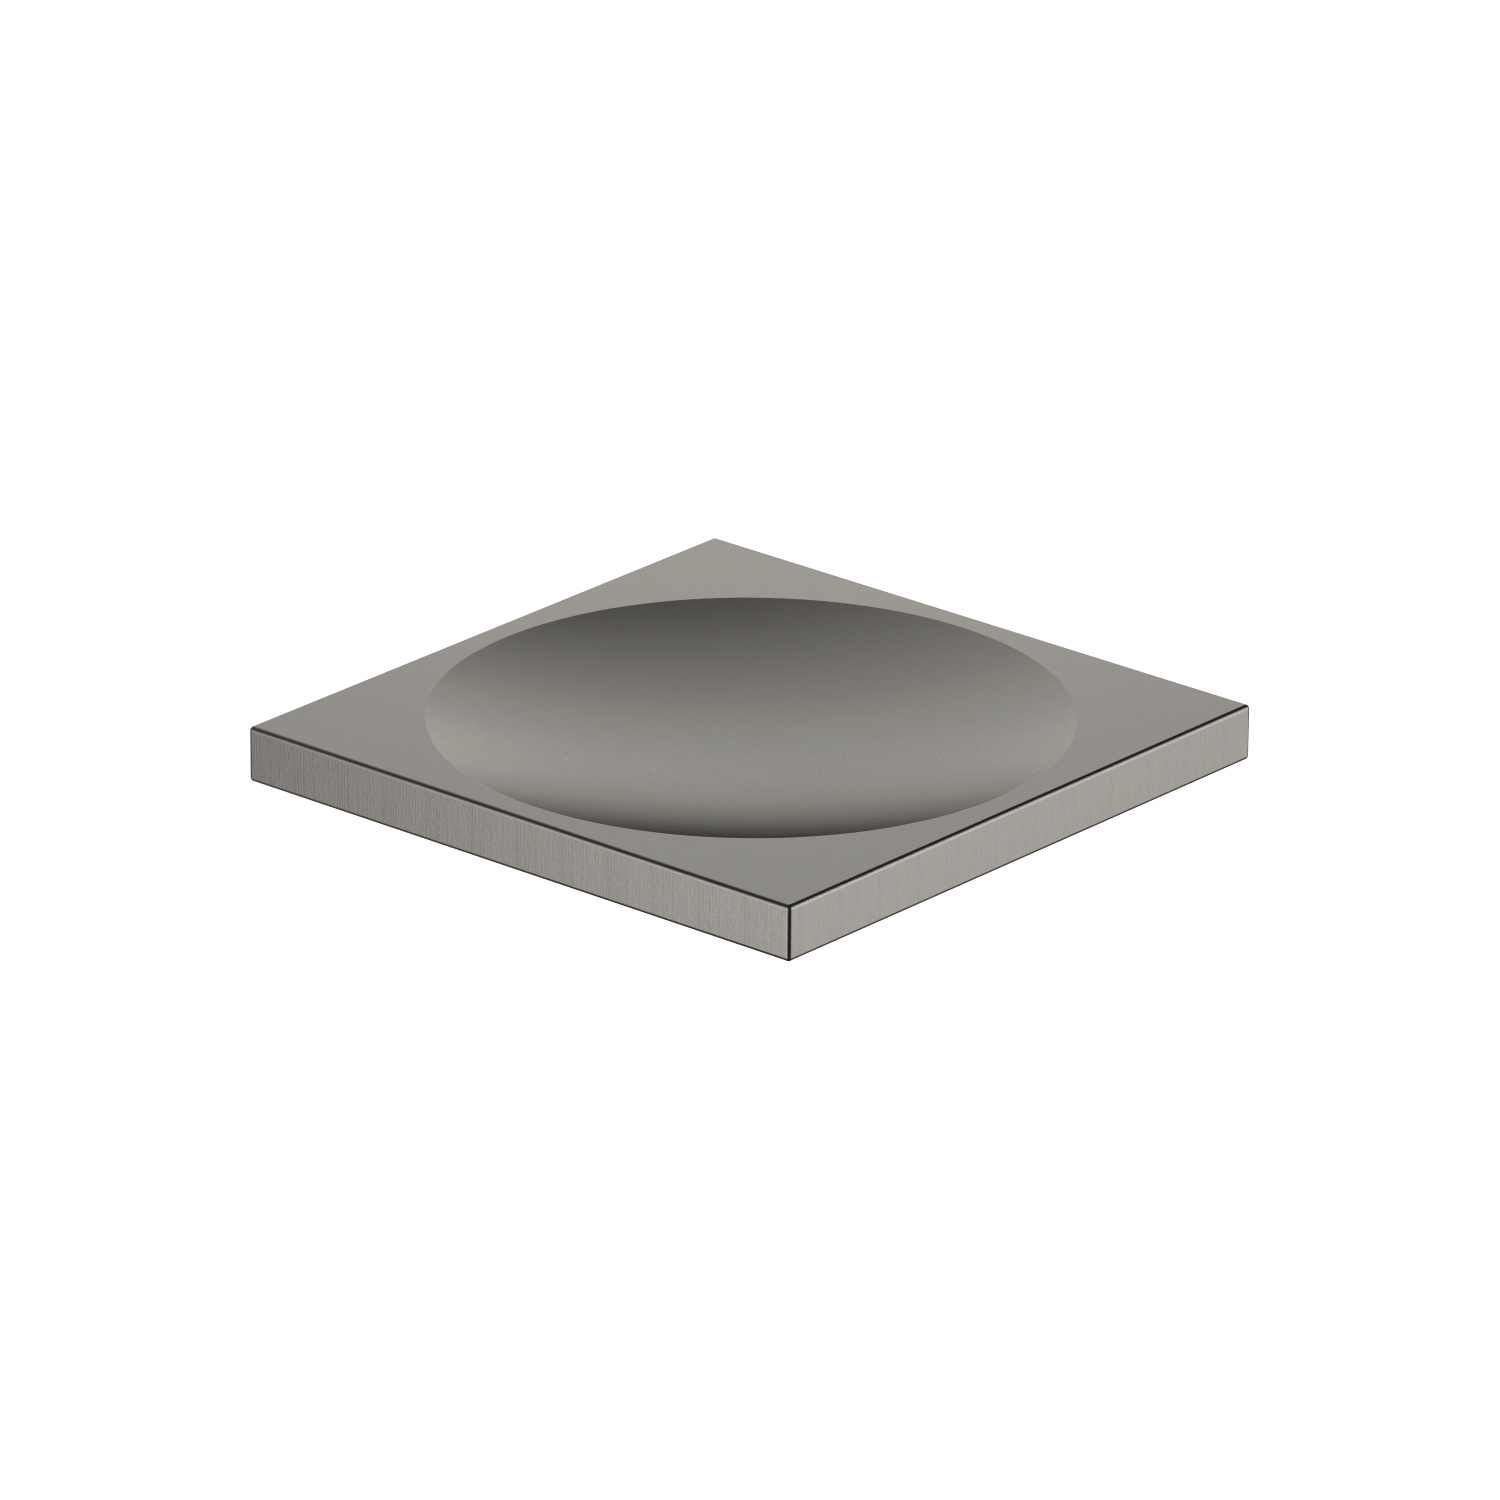 Soap dish free-standing model - Dark Platinum matt - 84 410 780-99